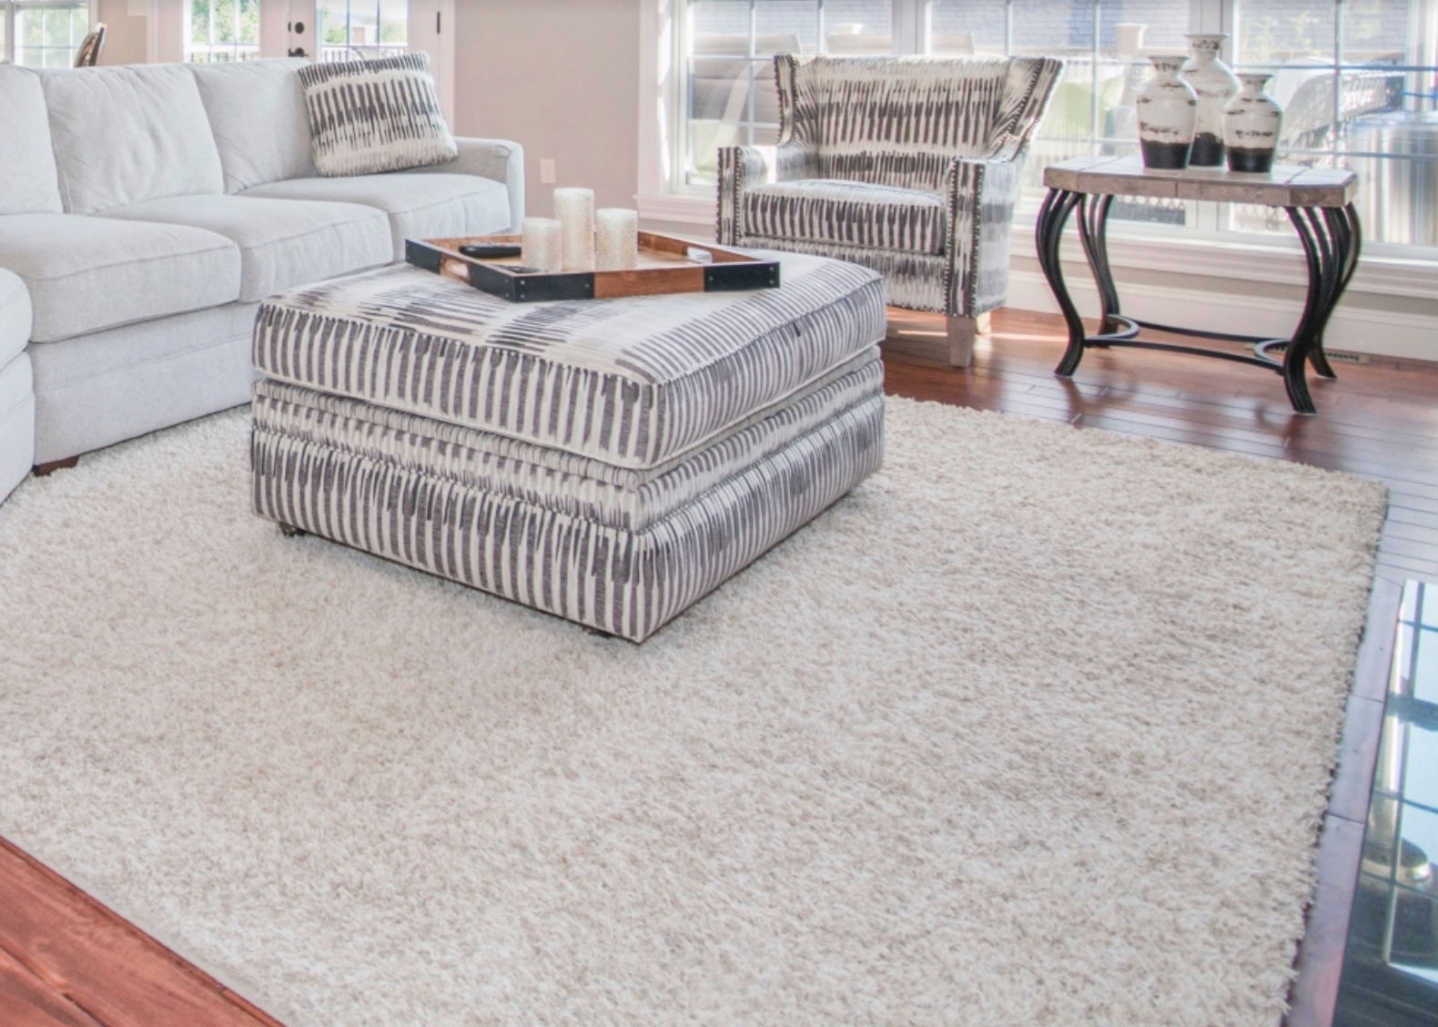 Carpet & Air Duct Cleaning Services   Michigan - Steves intended for How Often Should You Replace Carpet